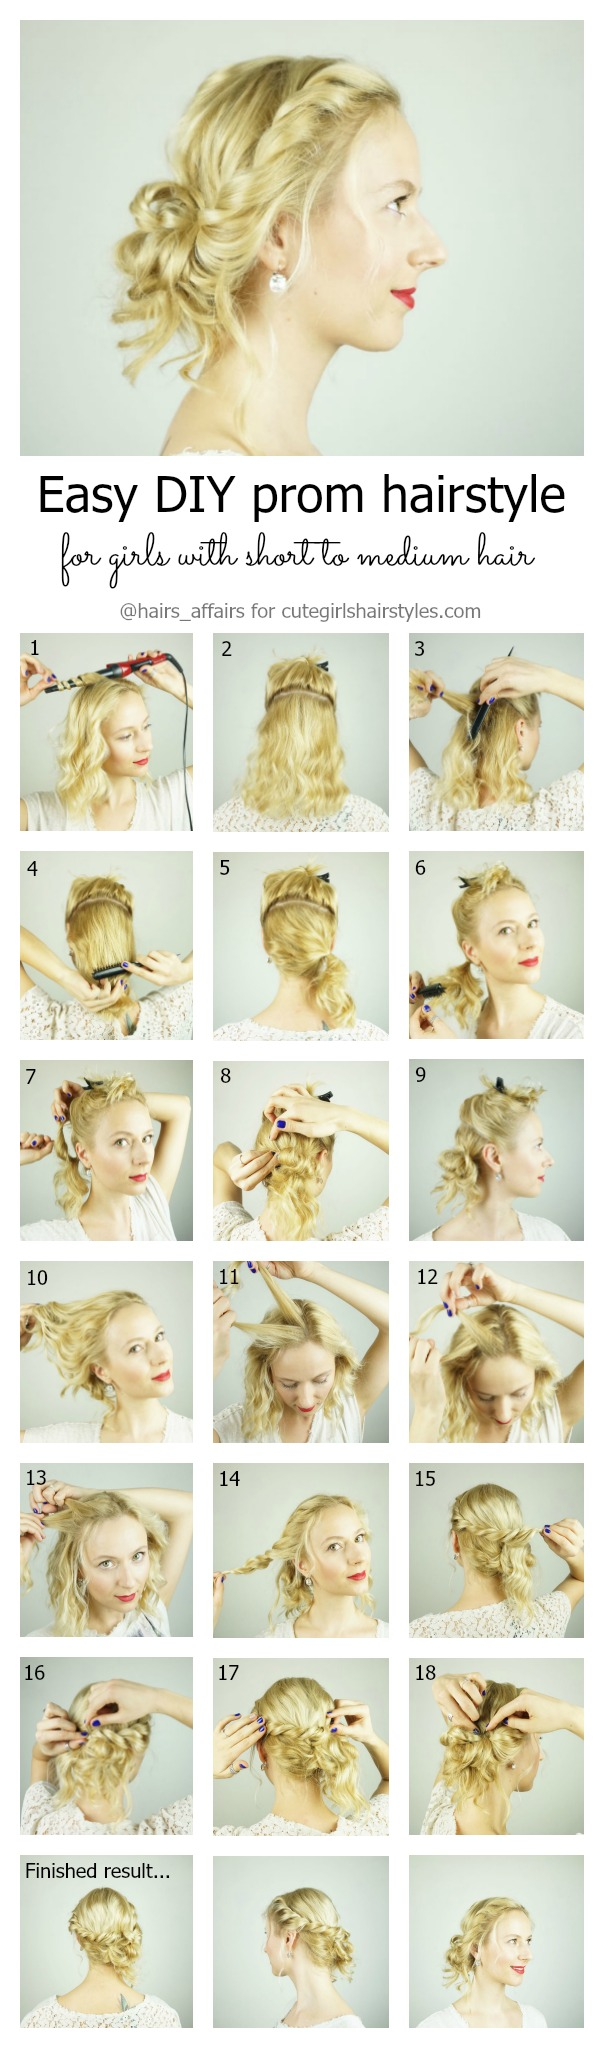 Easy DIY prom hairstyle for girls with short to medium hair